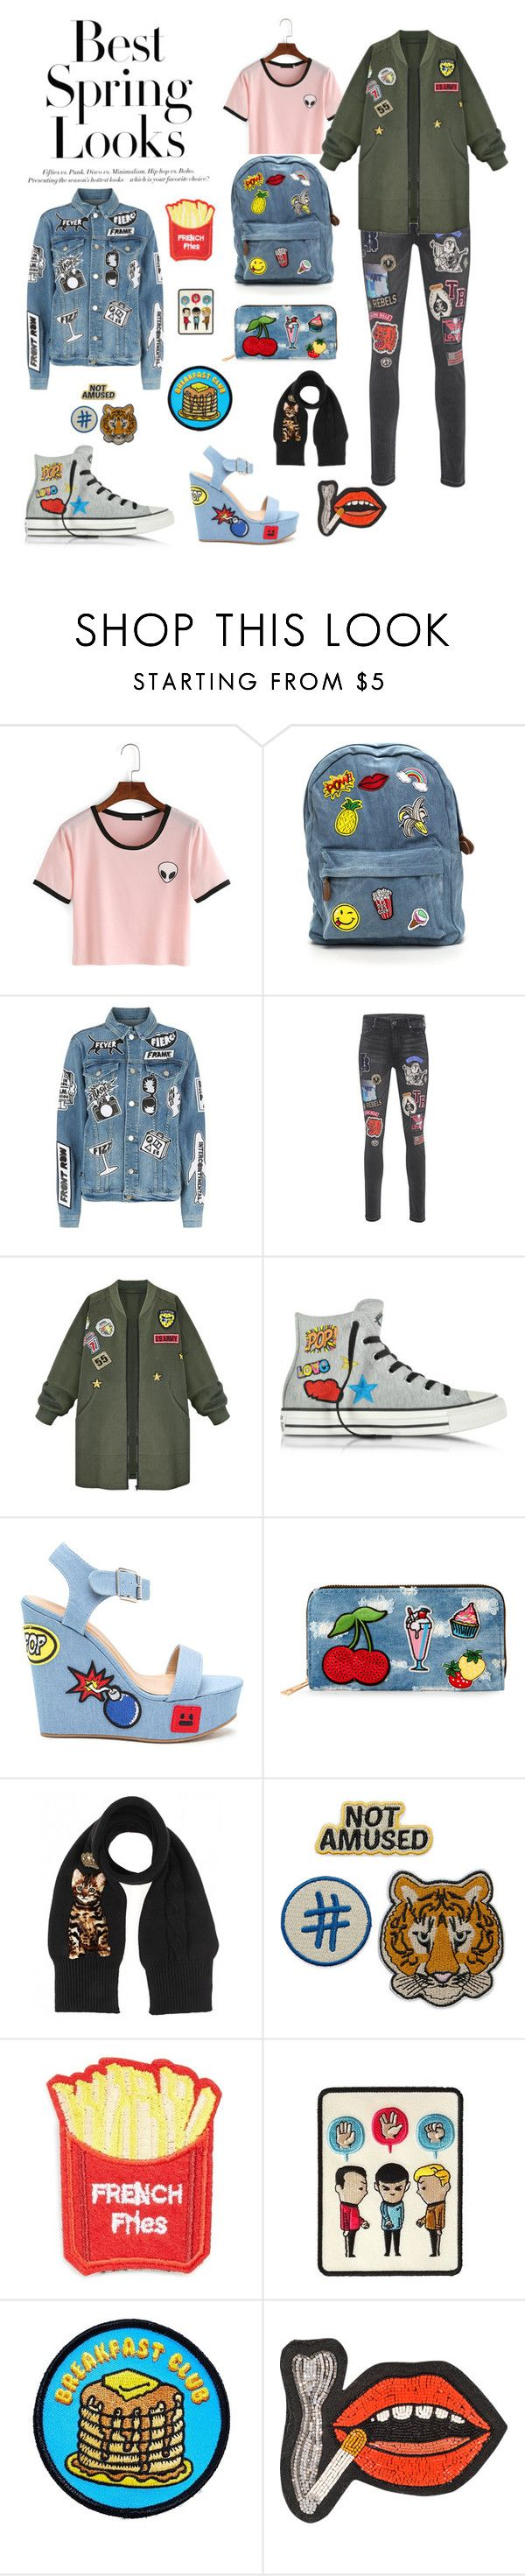 """Patch's Everywhere"" by marinapadualima ❤ liked on Polyvore featuring H&M, Frame, True Religion, WithChic, Converse, Viola, Dolce&Gabbana, Cara, Goblinko Megamall and Olympia Le-Tan"